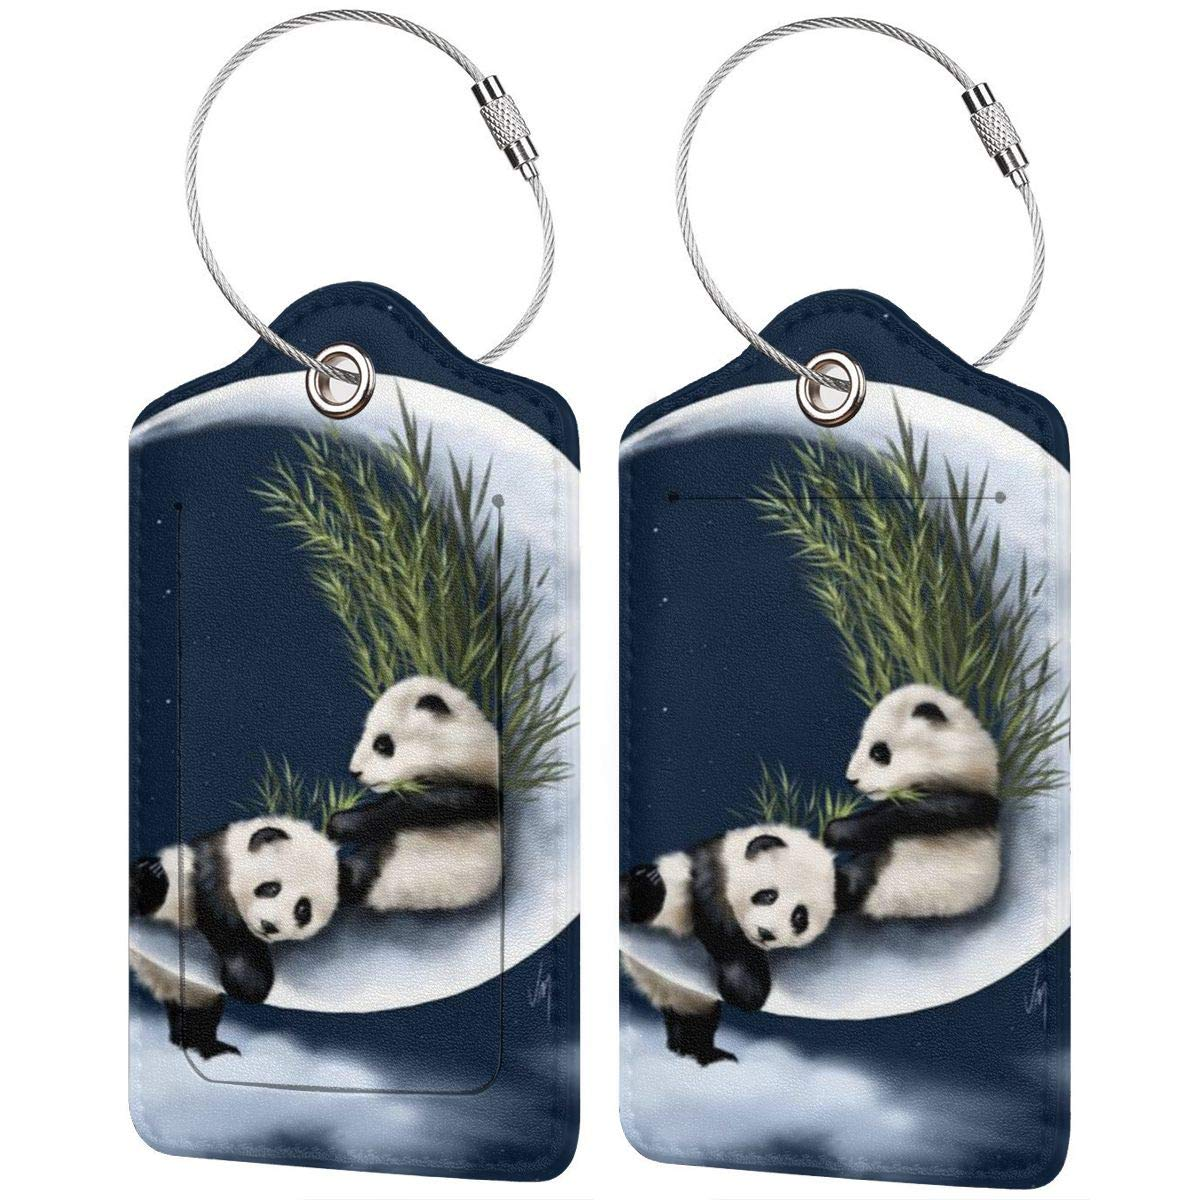 GoldK Funny Lazy Panda Leather Luggage Tags Baggage Bag Instrument Tag Travel Labels Accessories with Privacy Cover